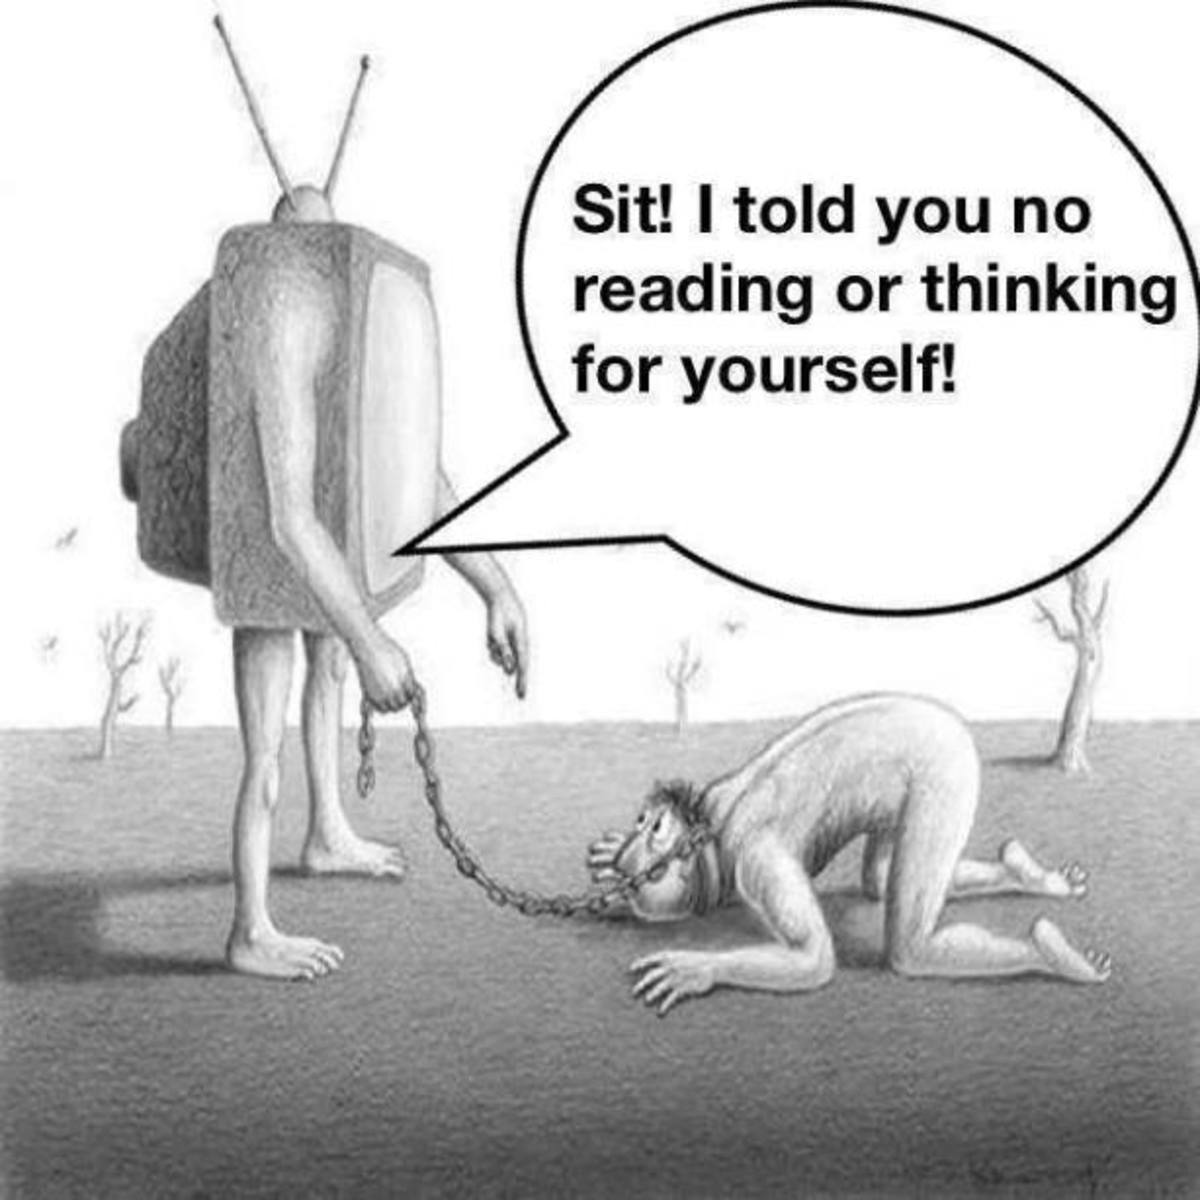 One of the oldest methods of mind control